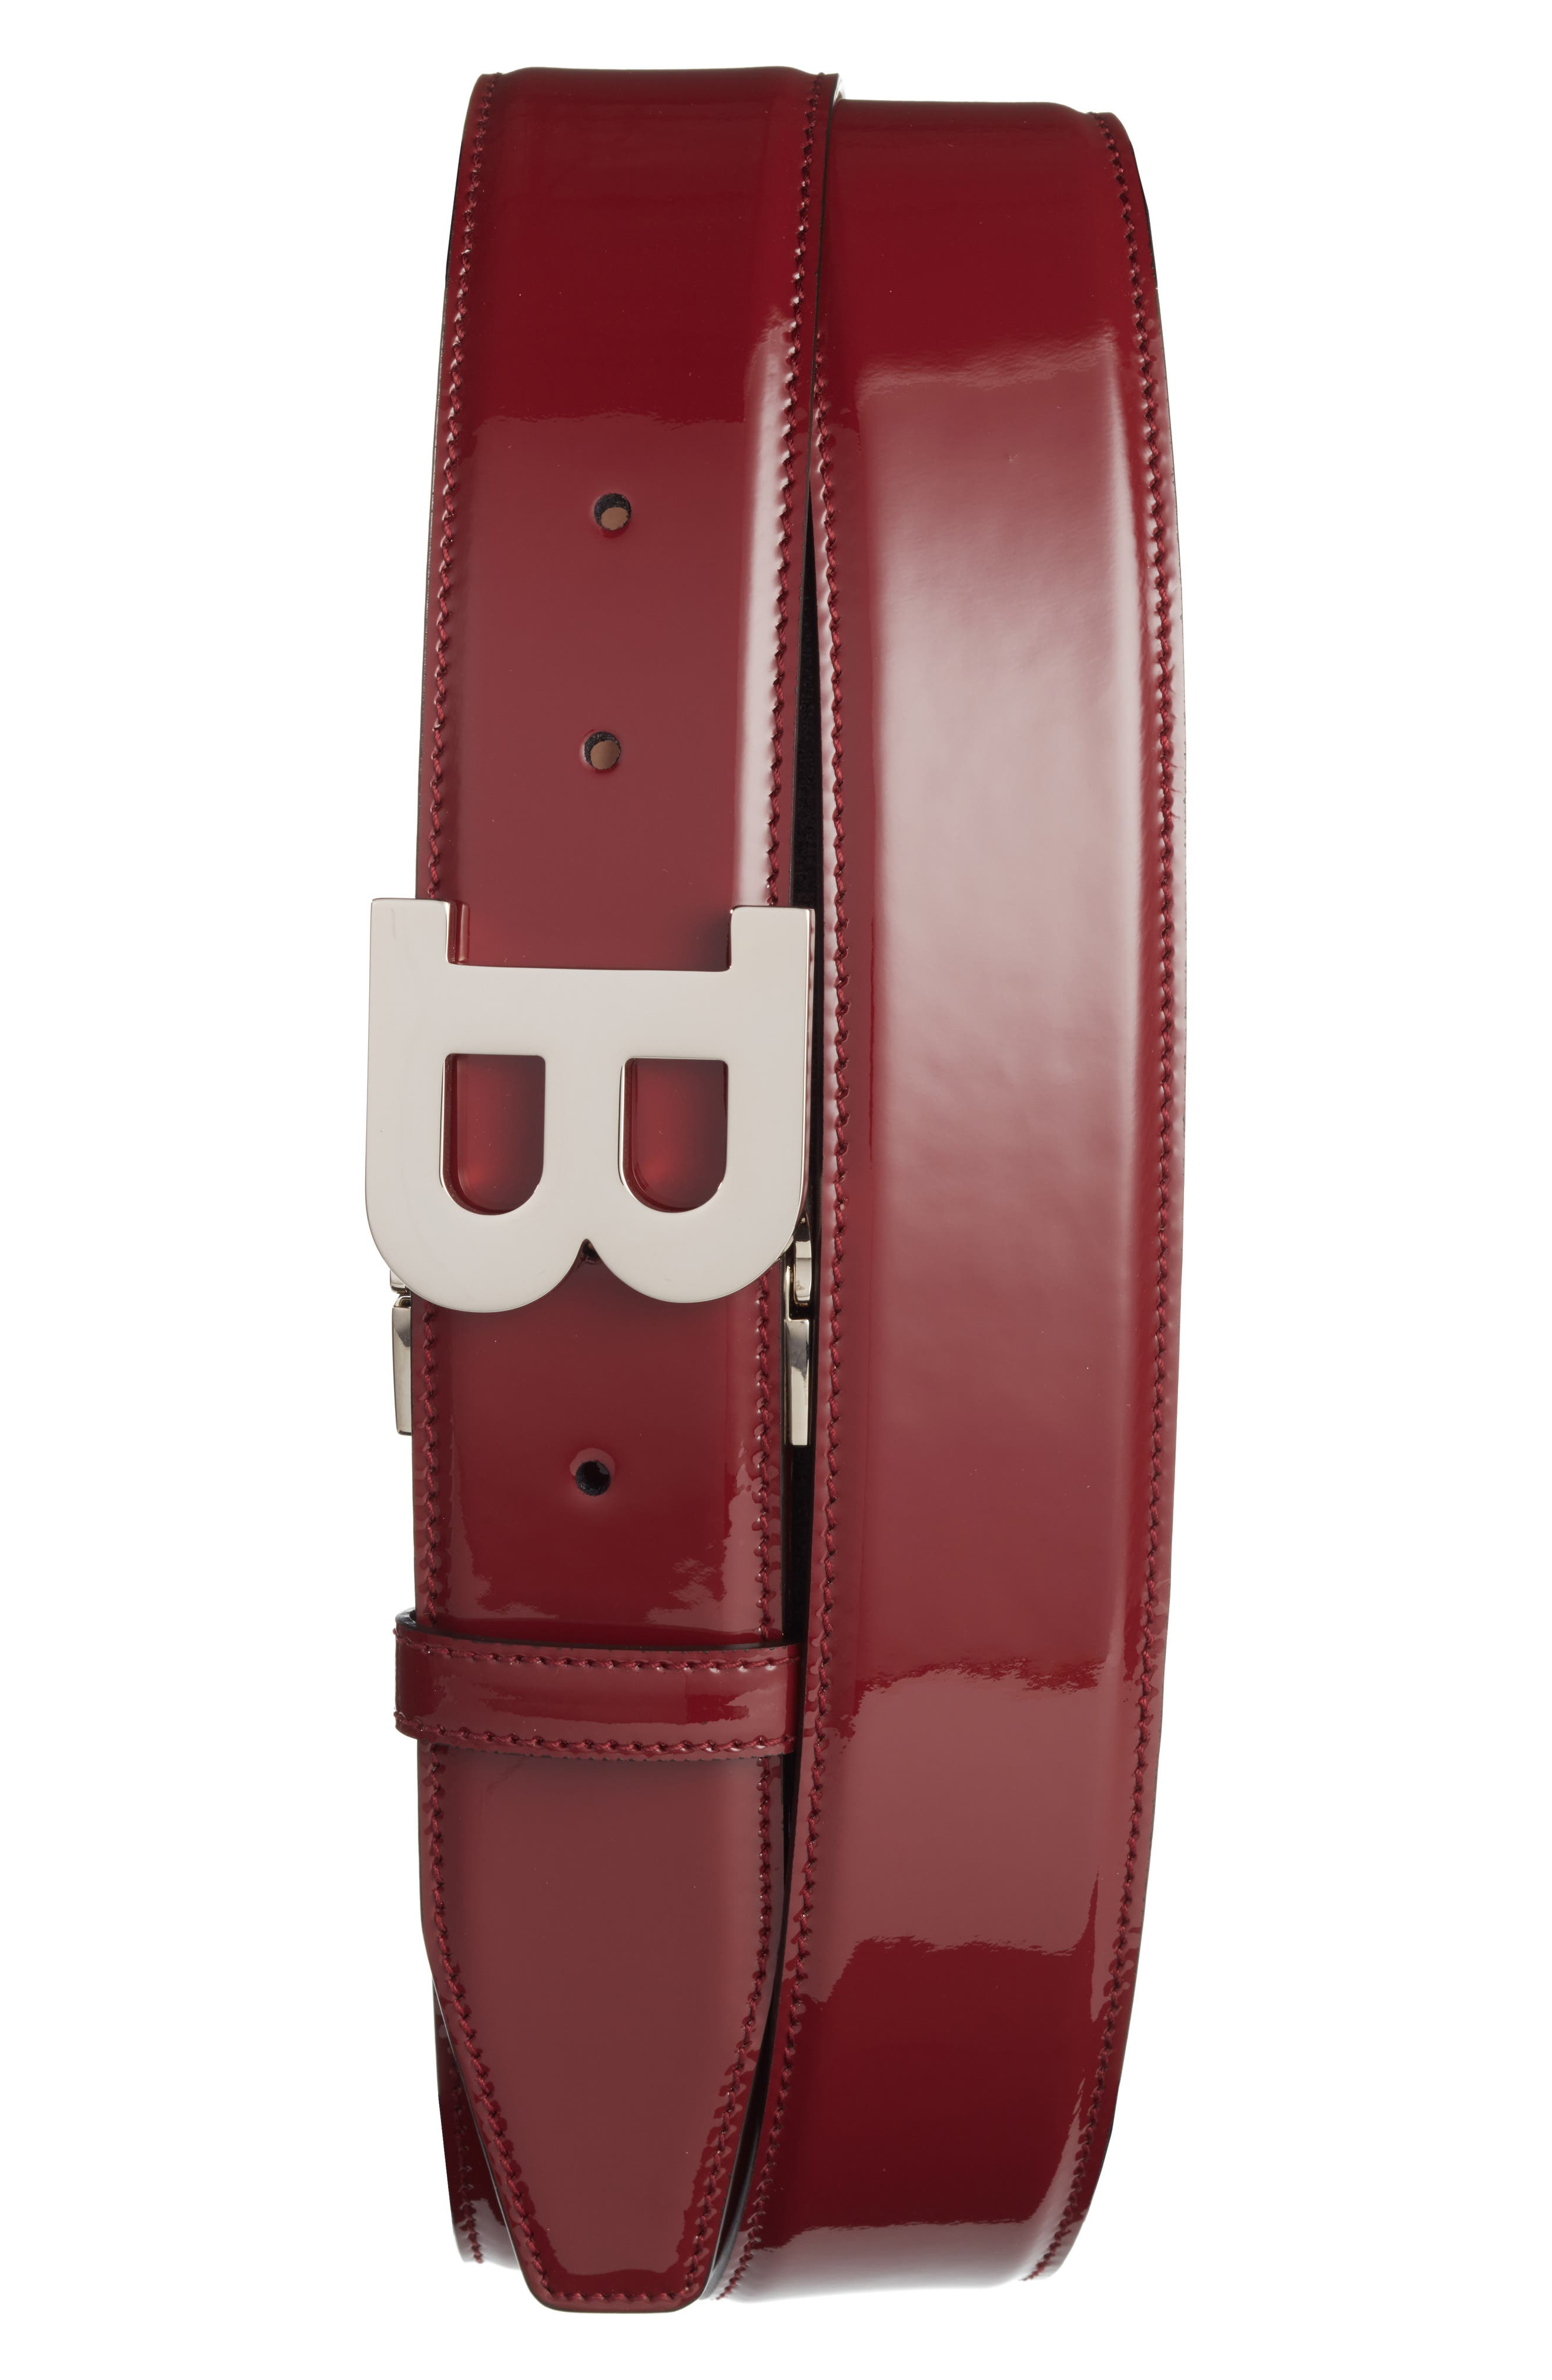 B Buckle Patent Leather Belt,                             Main thumbnail 1, color,                             Dark Red